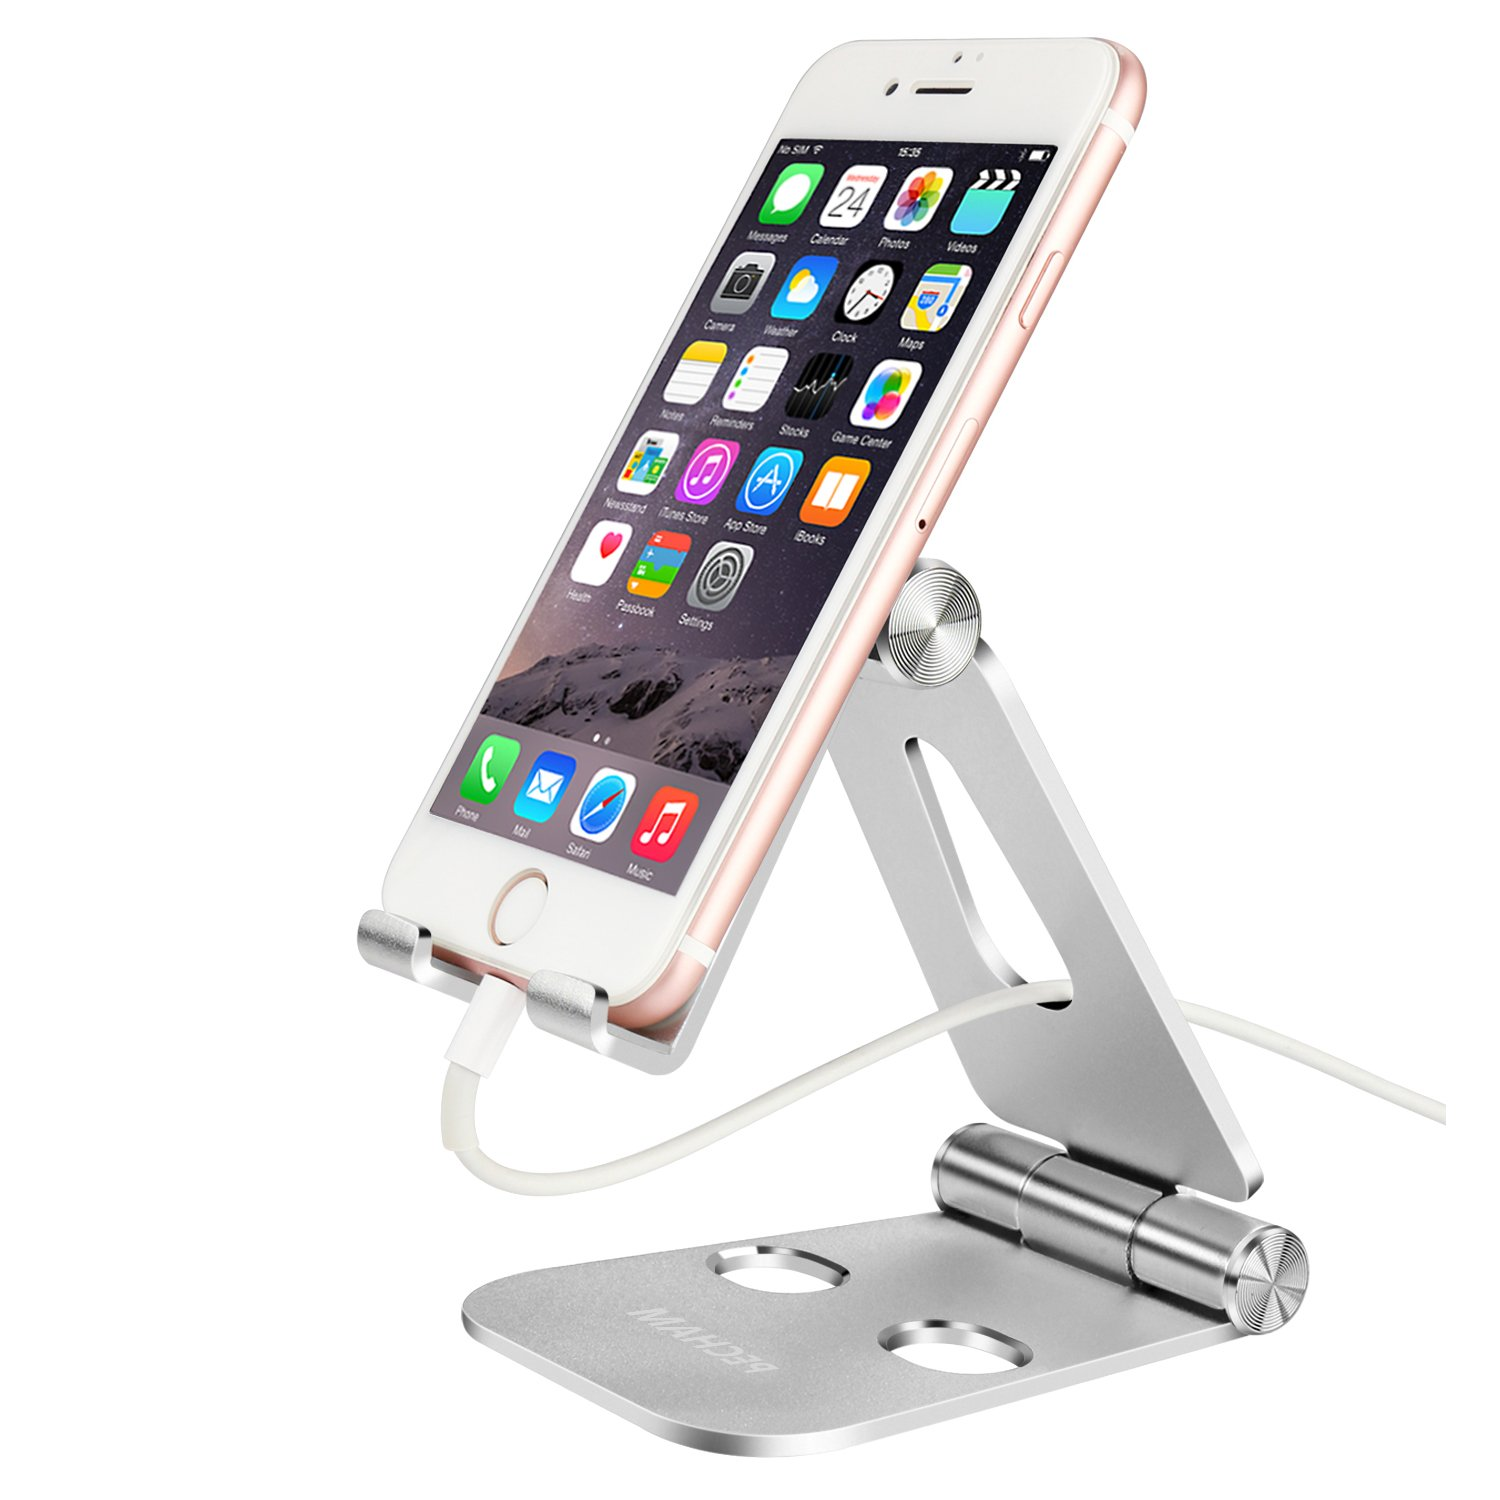 PECHAM Multi-Angle Stand for Cell Phone, Desk Stand Mount for Nintendo Switch, Iphone X 8 7 6 6s Plus 5 5s 5c, SamSung, Galaxy, Android Smartphones, Tablets, Universal Phone Holder- Silver